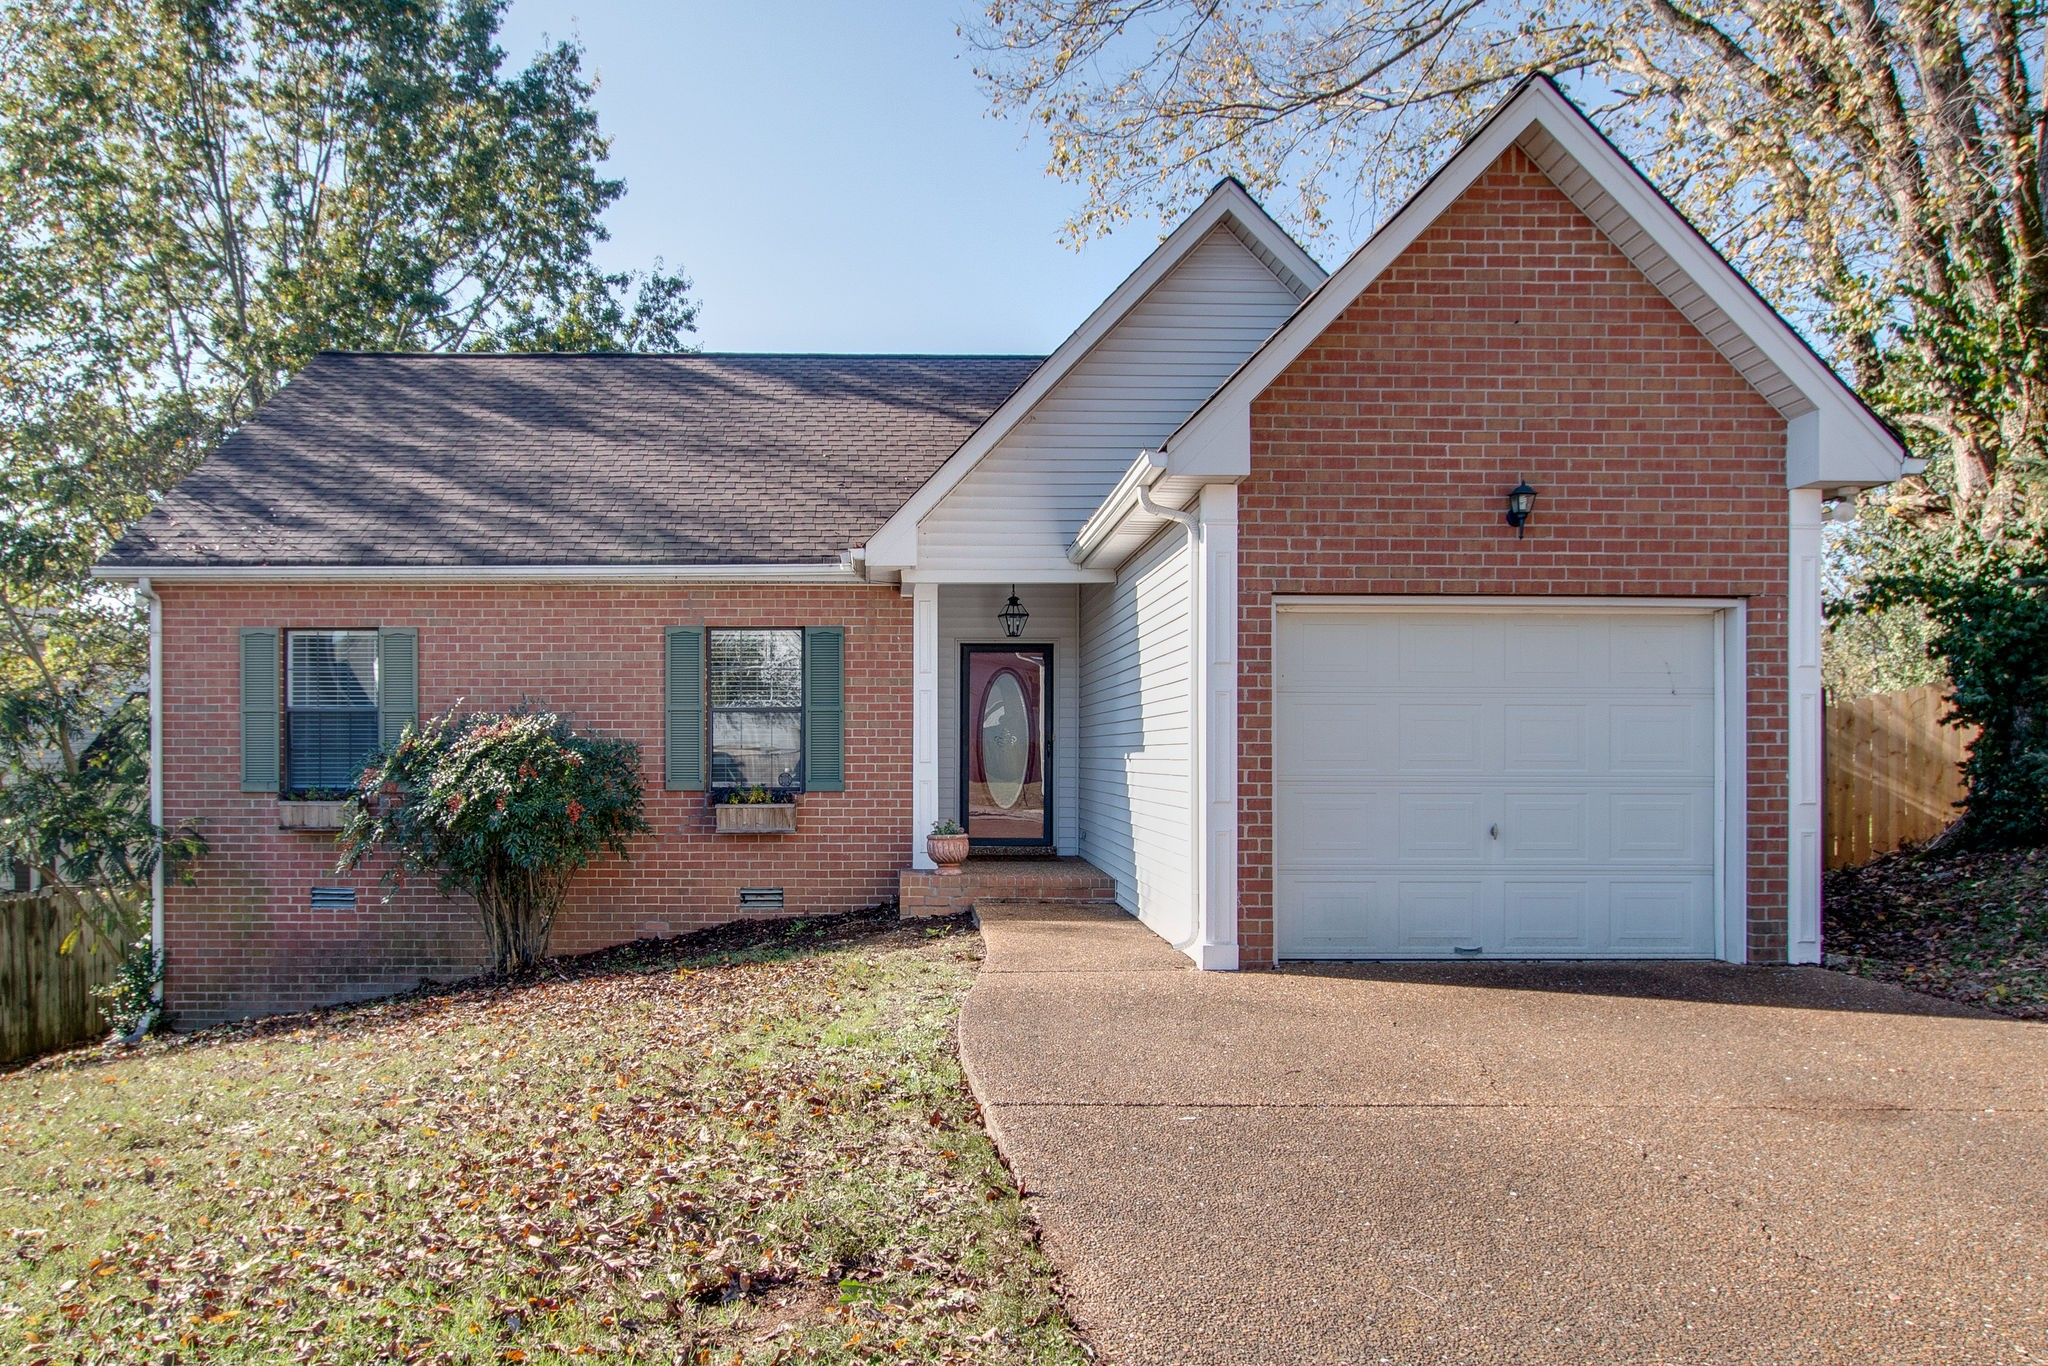 703 Dove Valley Ct, Bellevue in Davidson County County, TN 37221 Home for Sale